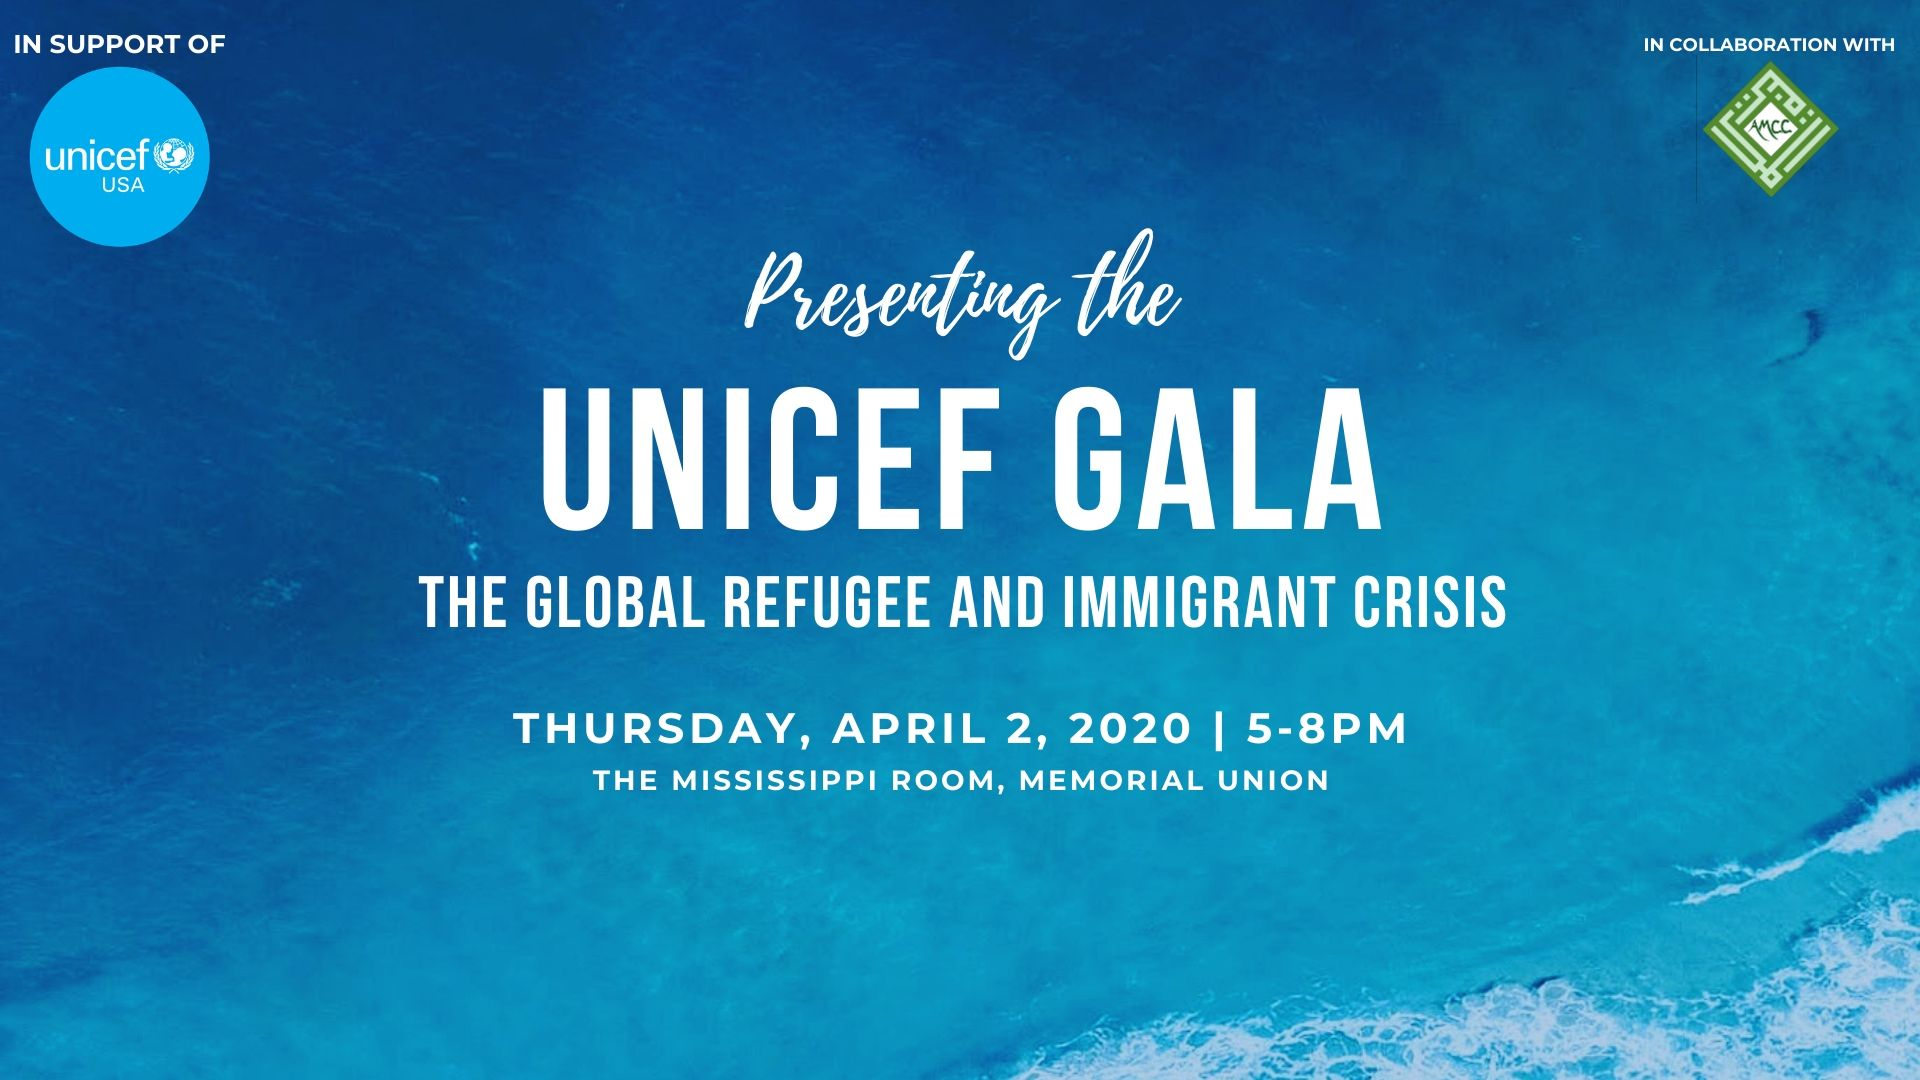 UNICEF Gala: The Global Refugee and Immigrant Crisis